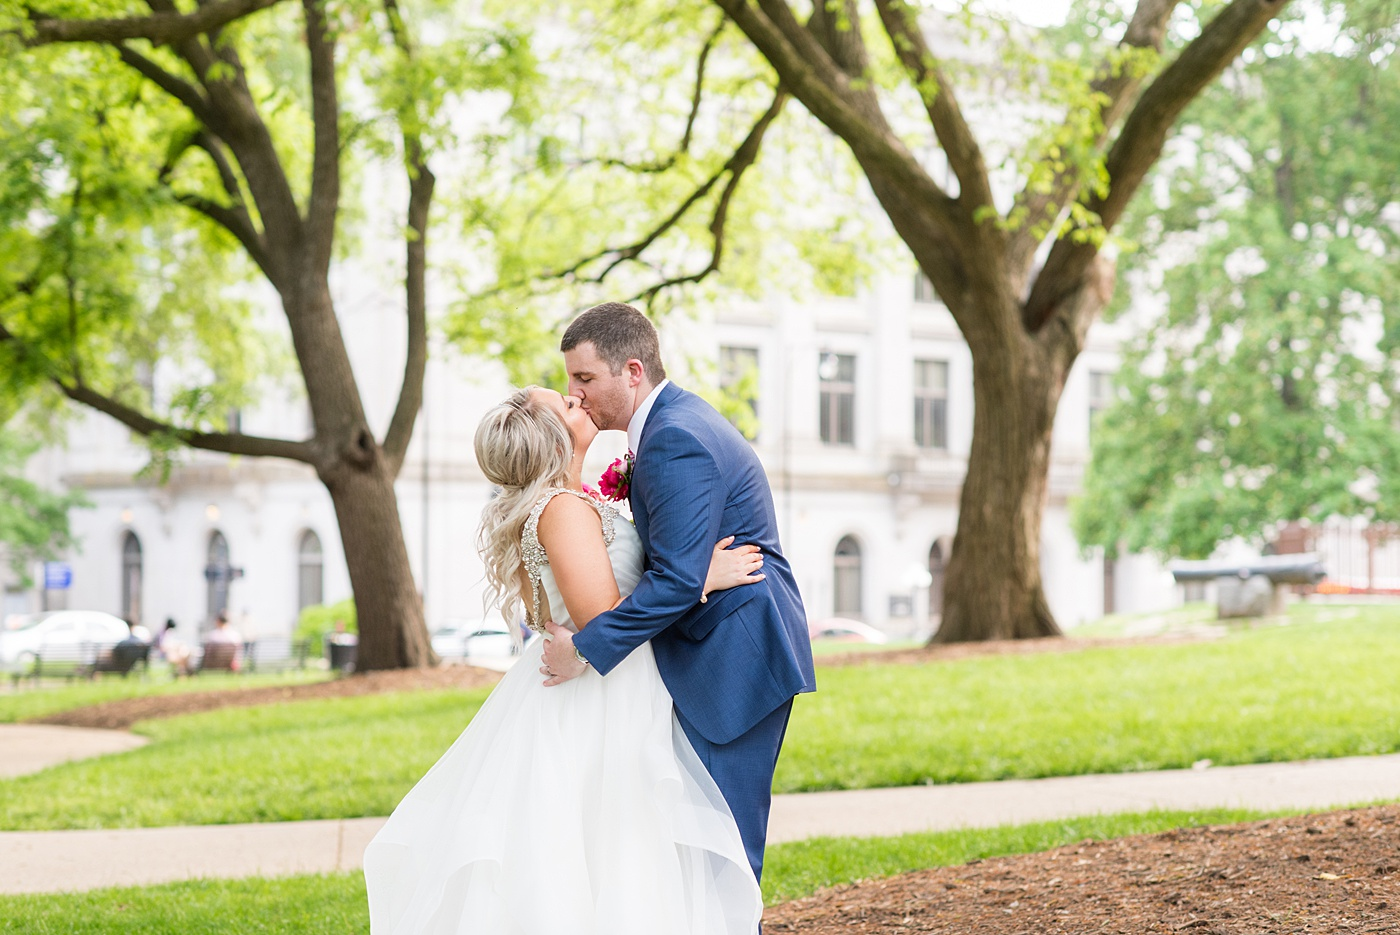 A beautiful spring wedding in downtown Raleigh, North Carolina, at the event venue, The Stockroom at 230 and The Glass Box. Their photographer, Mikkel Paige Photography, captured inspiring bride, groom and wedding portraits and reception pictures of their hot pink and aqua blue colors. #MikkelPaige #DowntownRaleigh #RaleighWedding #RaleighVenue #TheStockroomat230